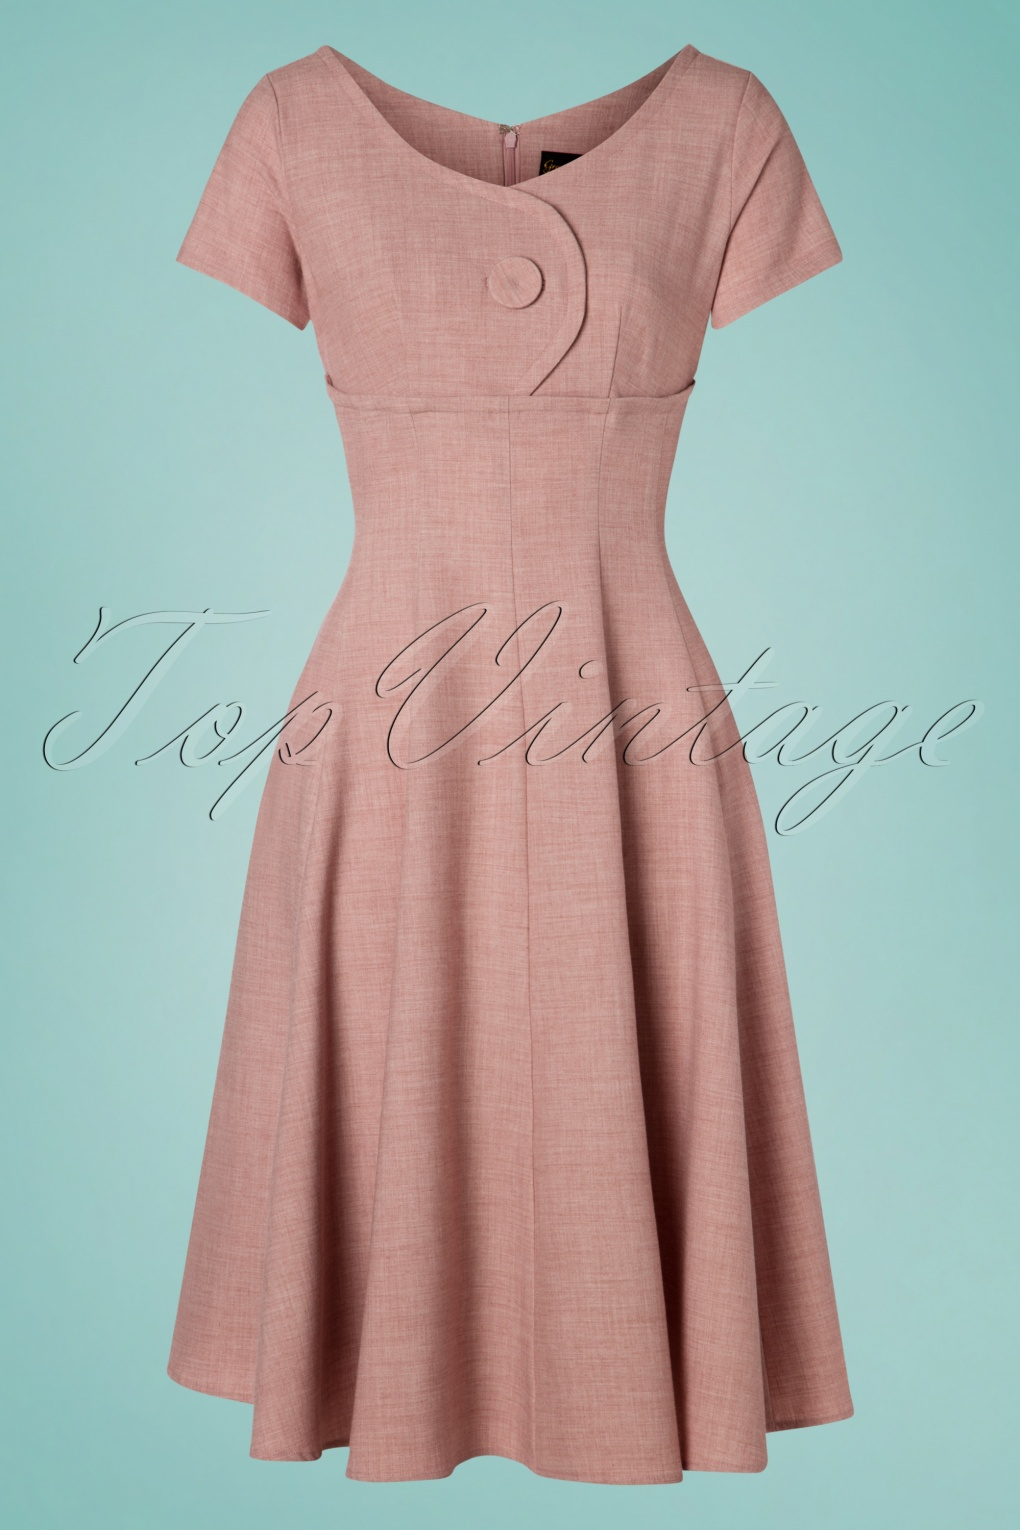 50 Vintage Inspired Clothing Stores 50s Rosey Jewel Swing Dress in Pink £98.79 AT vintagedancer.com